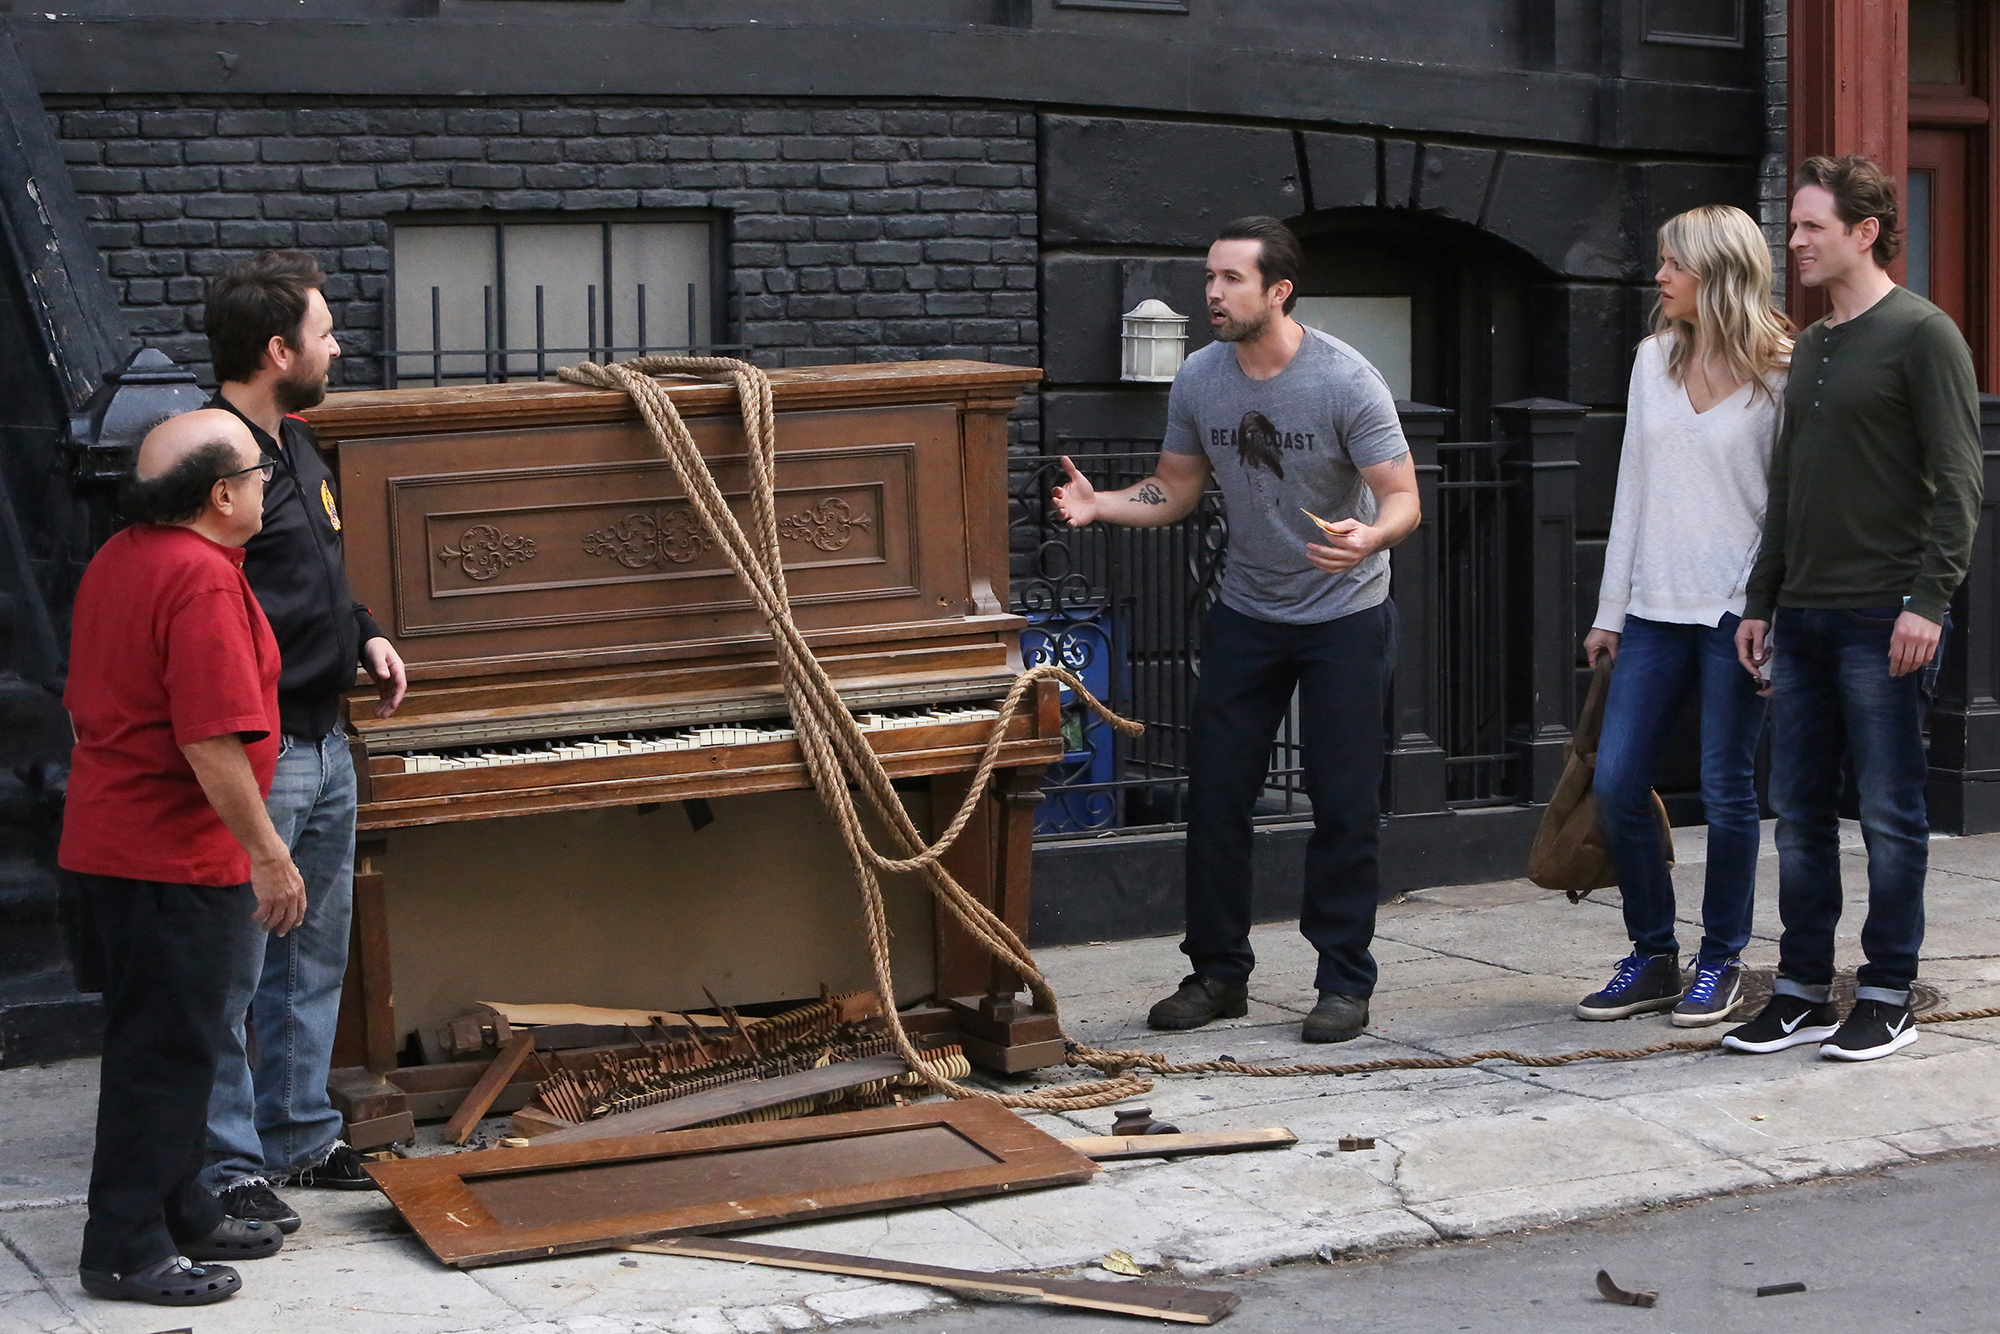 From left: Danny DeVito as Frank, Charlie Day as Charlie, Rob McElhenney as Mac, Kaitlin Olson as Dee, and Glenn Howerton as Dennis in It's Always Sunny In Philadelphia.